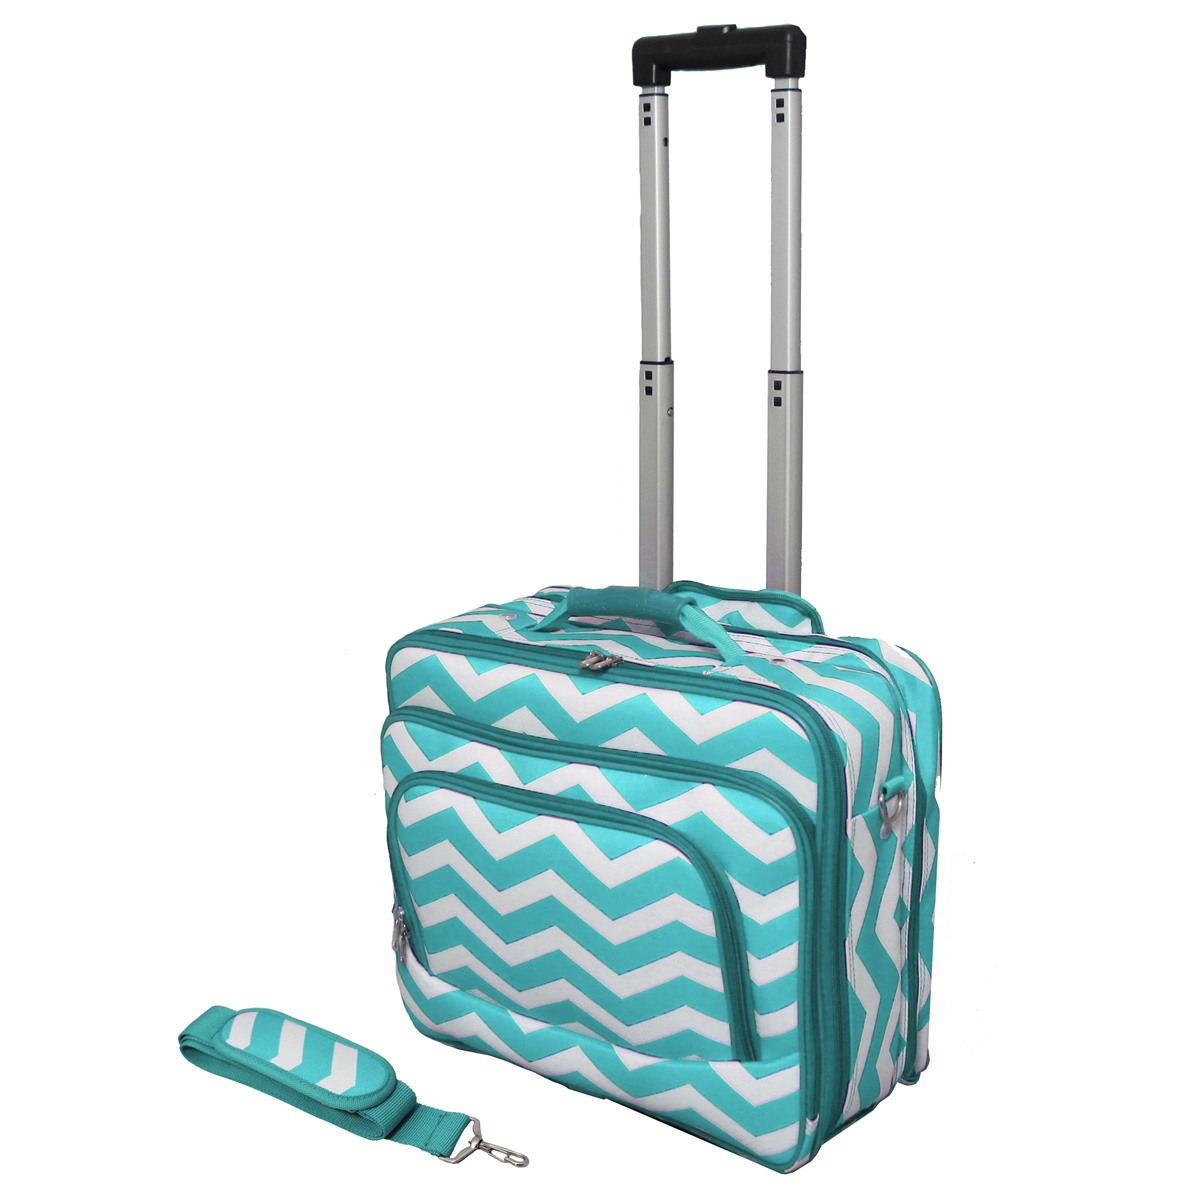 All-Seasons 813102-165LT-W 17 inch ZigZag Print Womens Rolling Laptop Case, Turquoise Cream